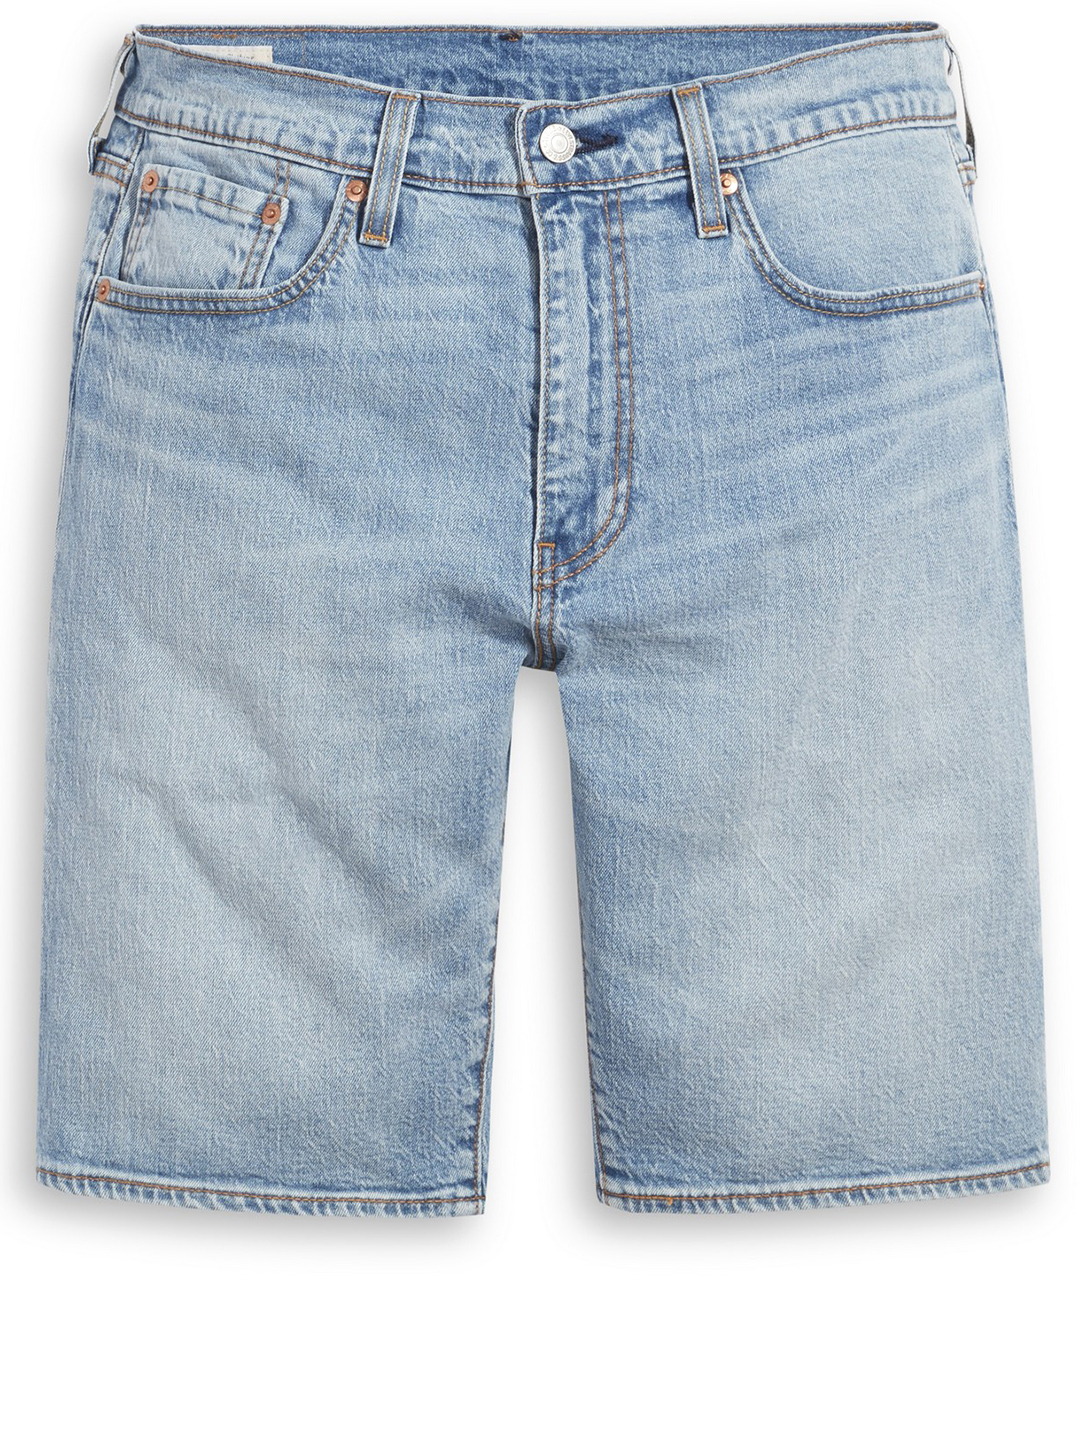 LEVI'S 405 Standard Denim Shorts Men's Blue